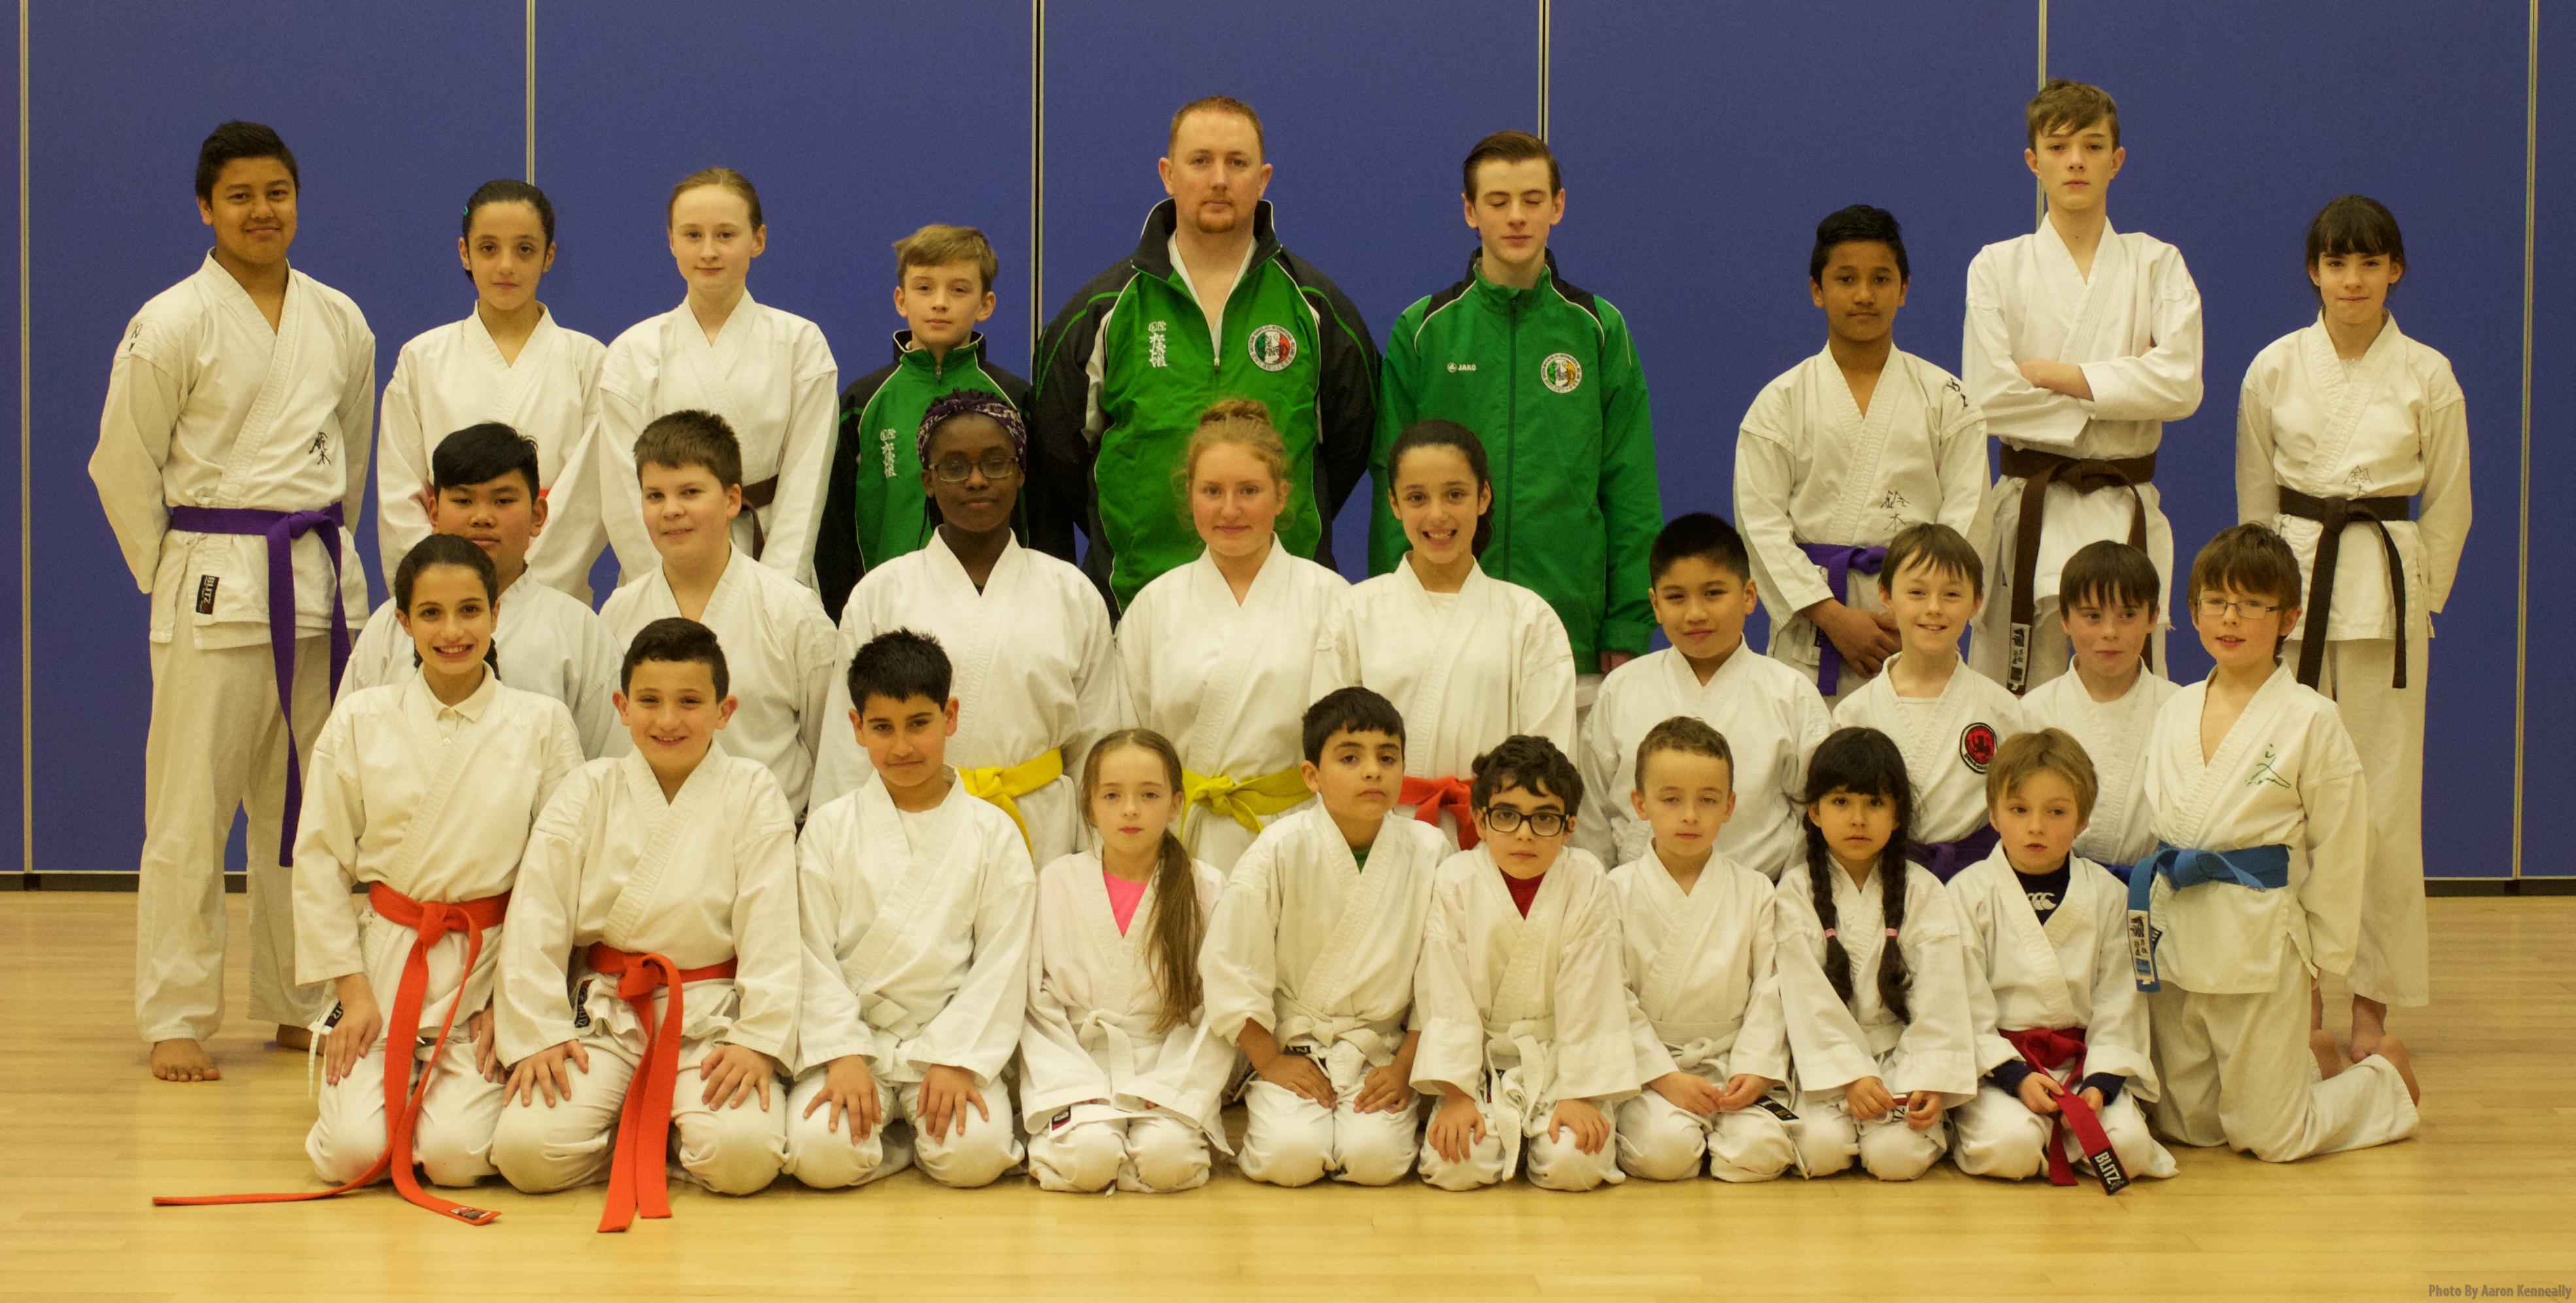 Bushido Karate Club members with Sensei Aaron Kenneally, Tom O Brien and Oisin O Sullivan who have been selected to represent SKIF Ireland at the SKIF World Championships in Jakarta, Indonesia in August 2016